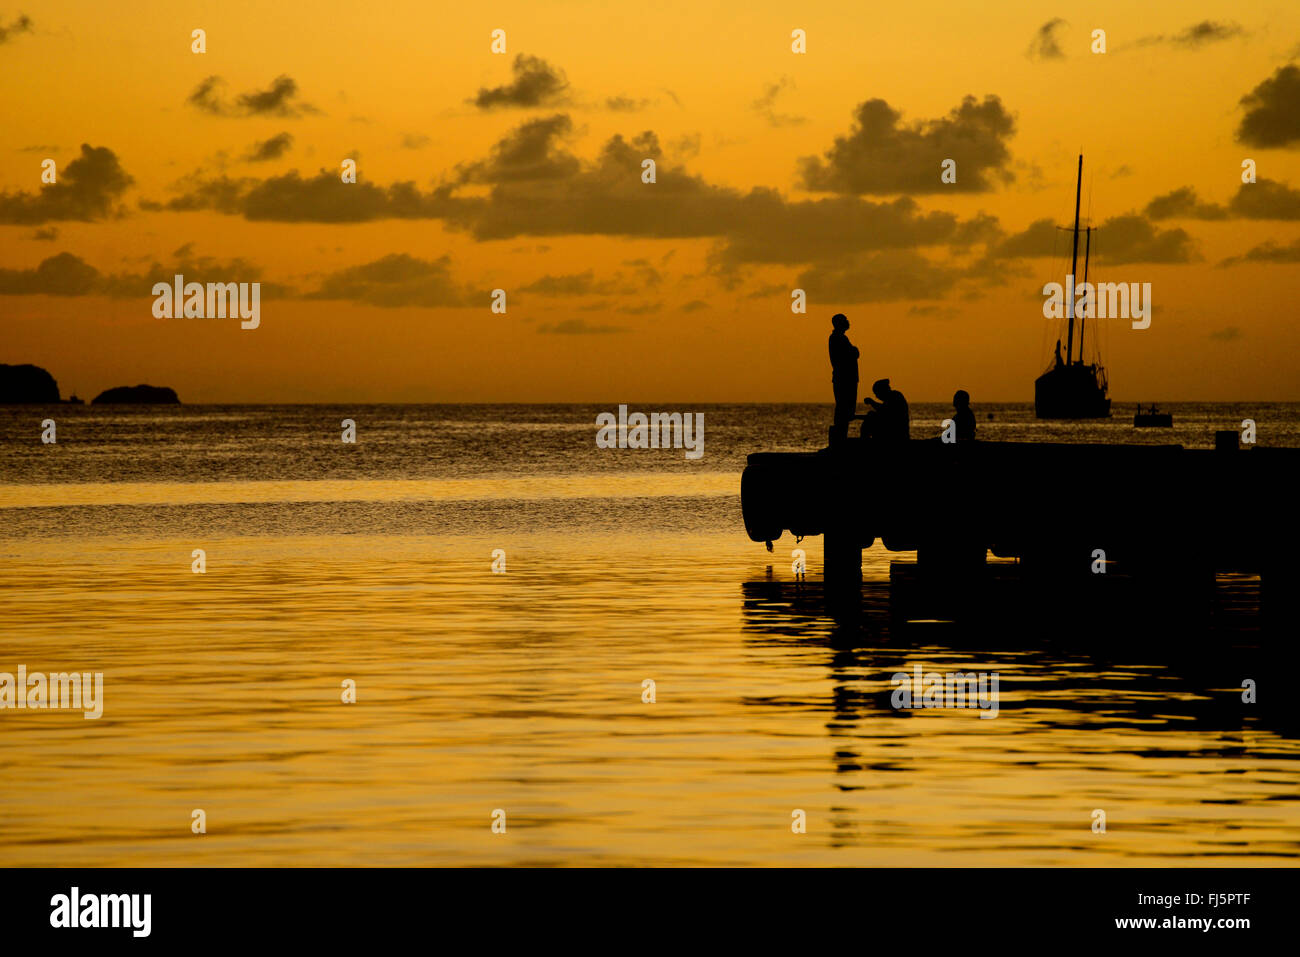 Harbour of Clifton at Union island, Saint Vincent and the Grenadines - Stock Image